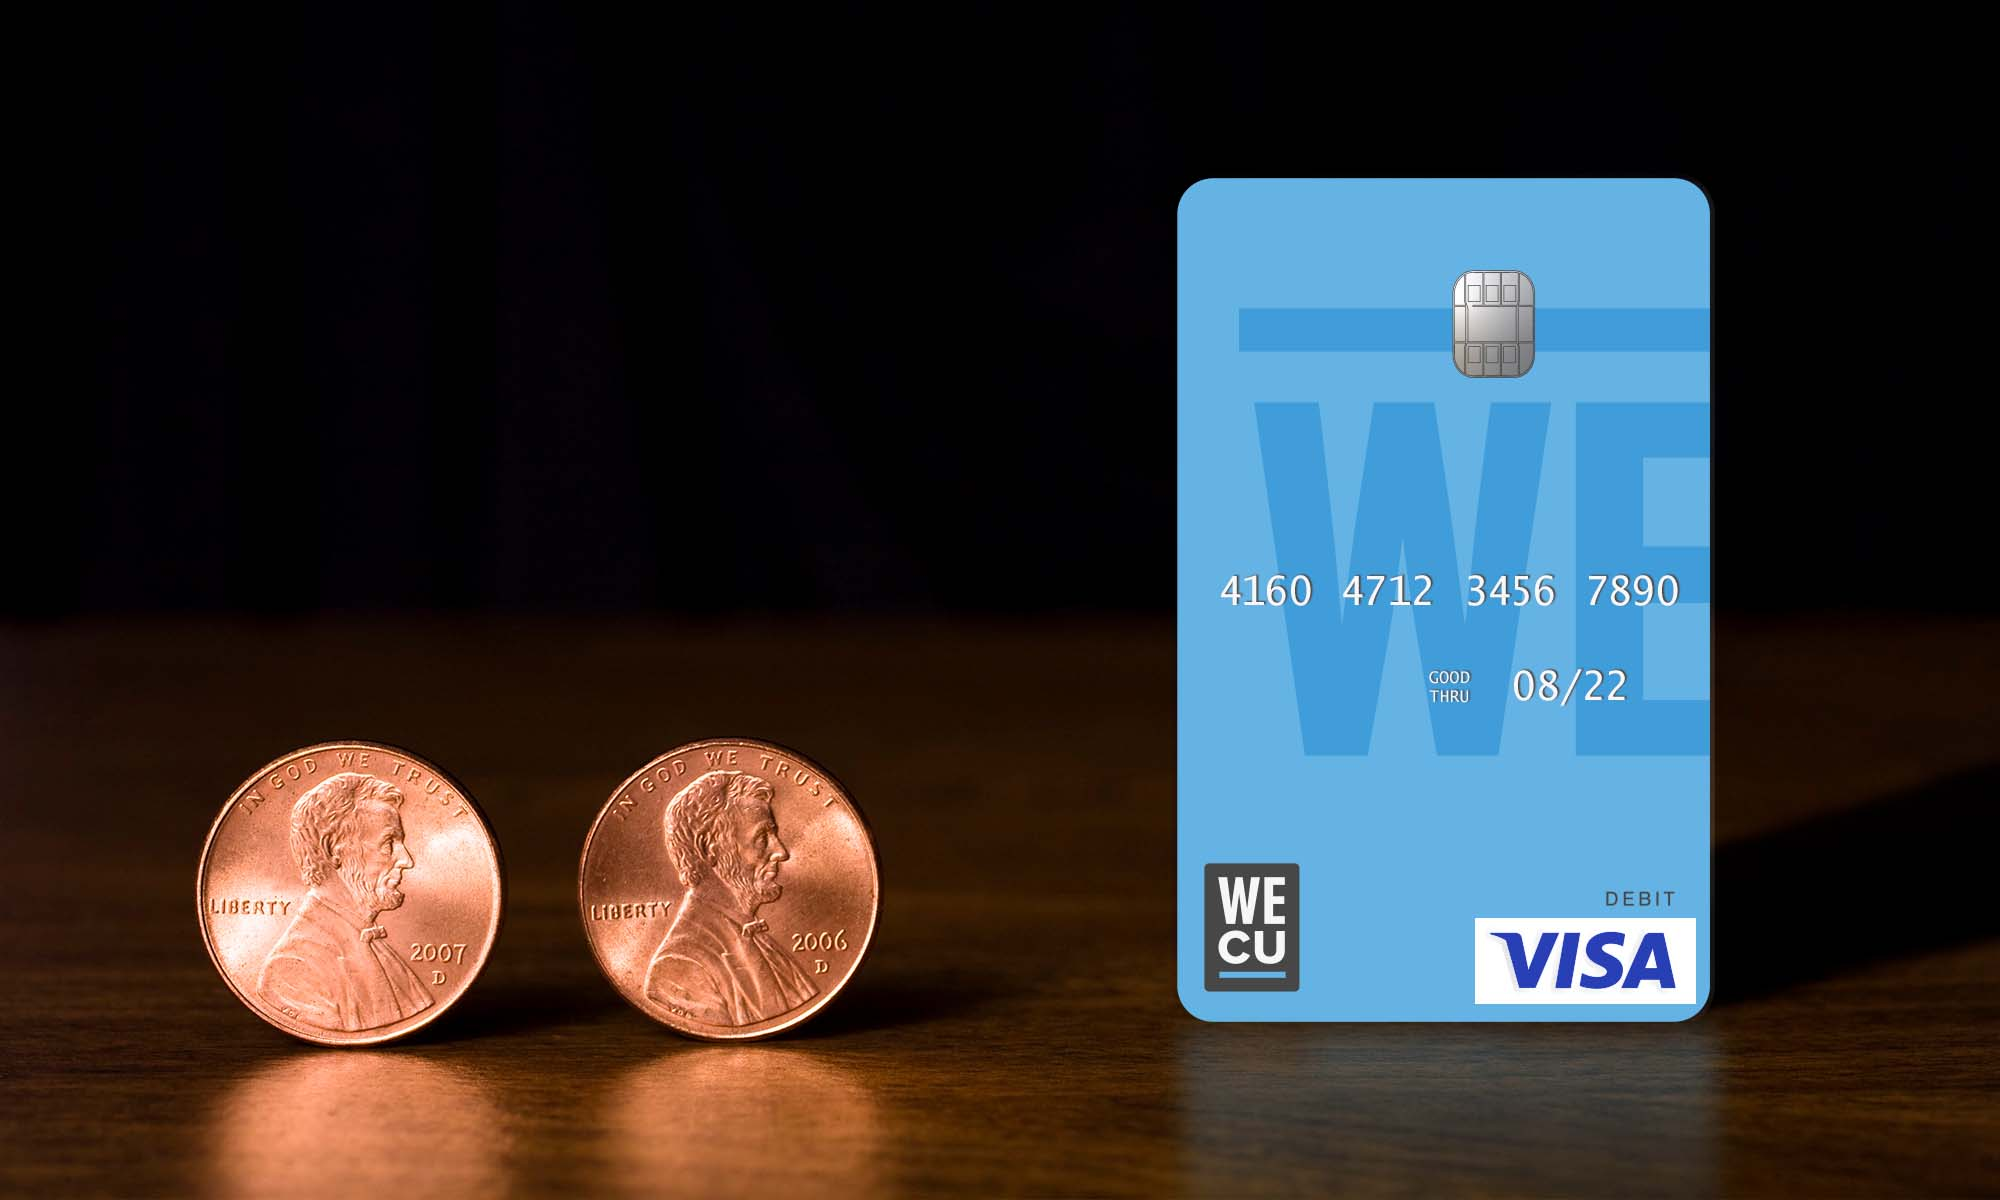 Two pennies next to the WECU debit card.